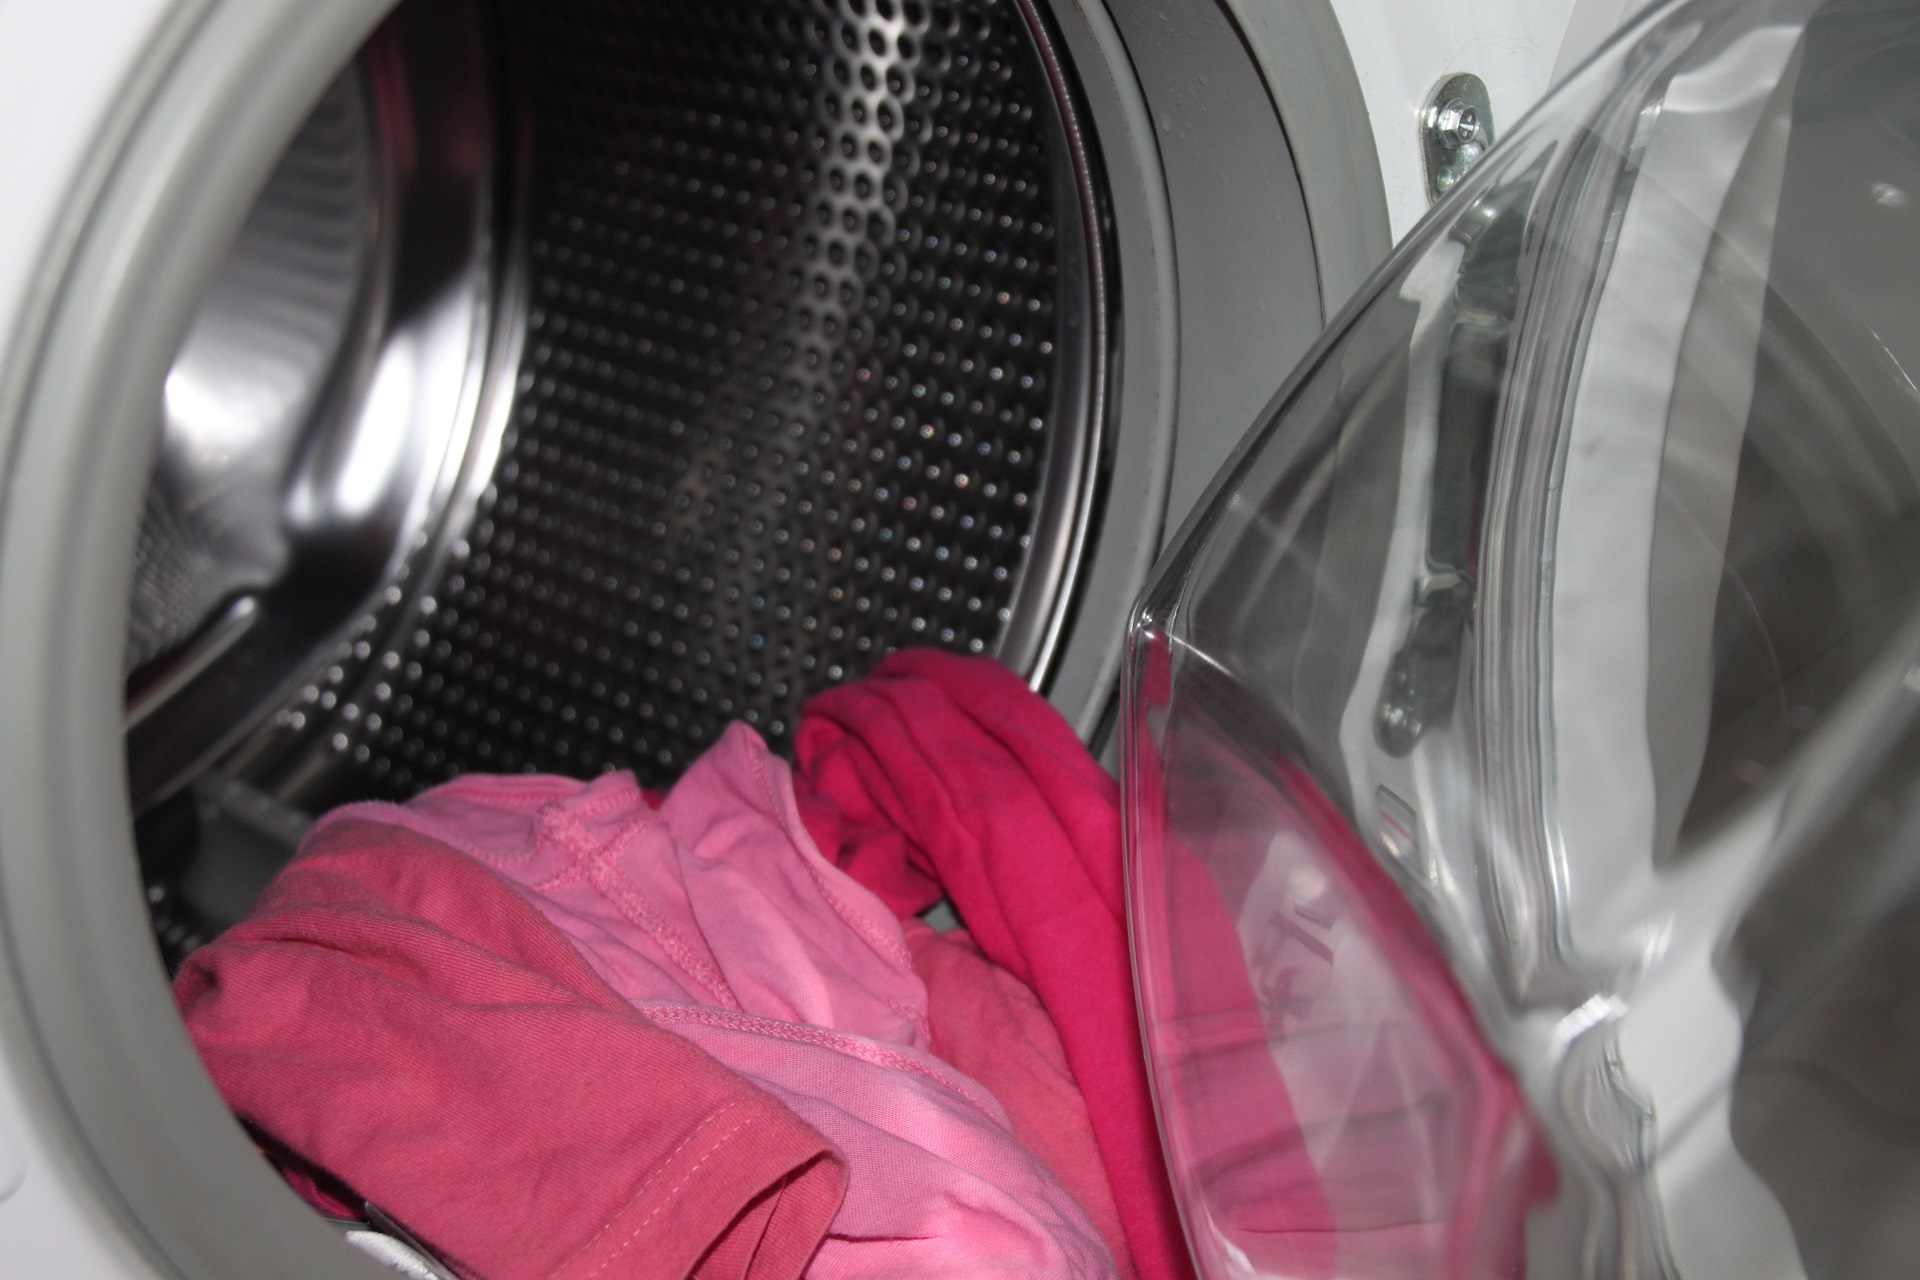 how to wash your yoga mat in the washing machine